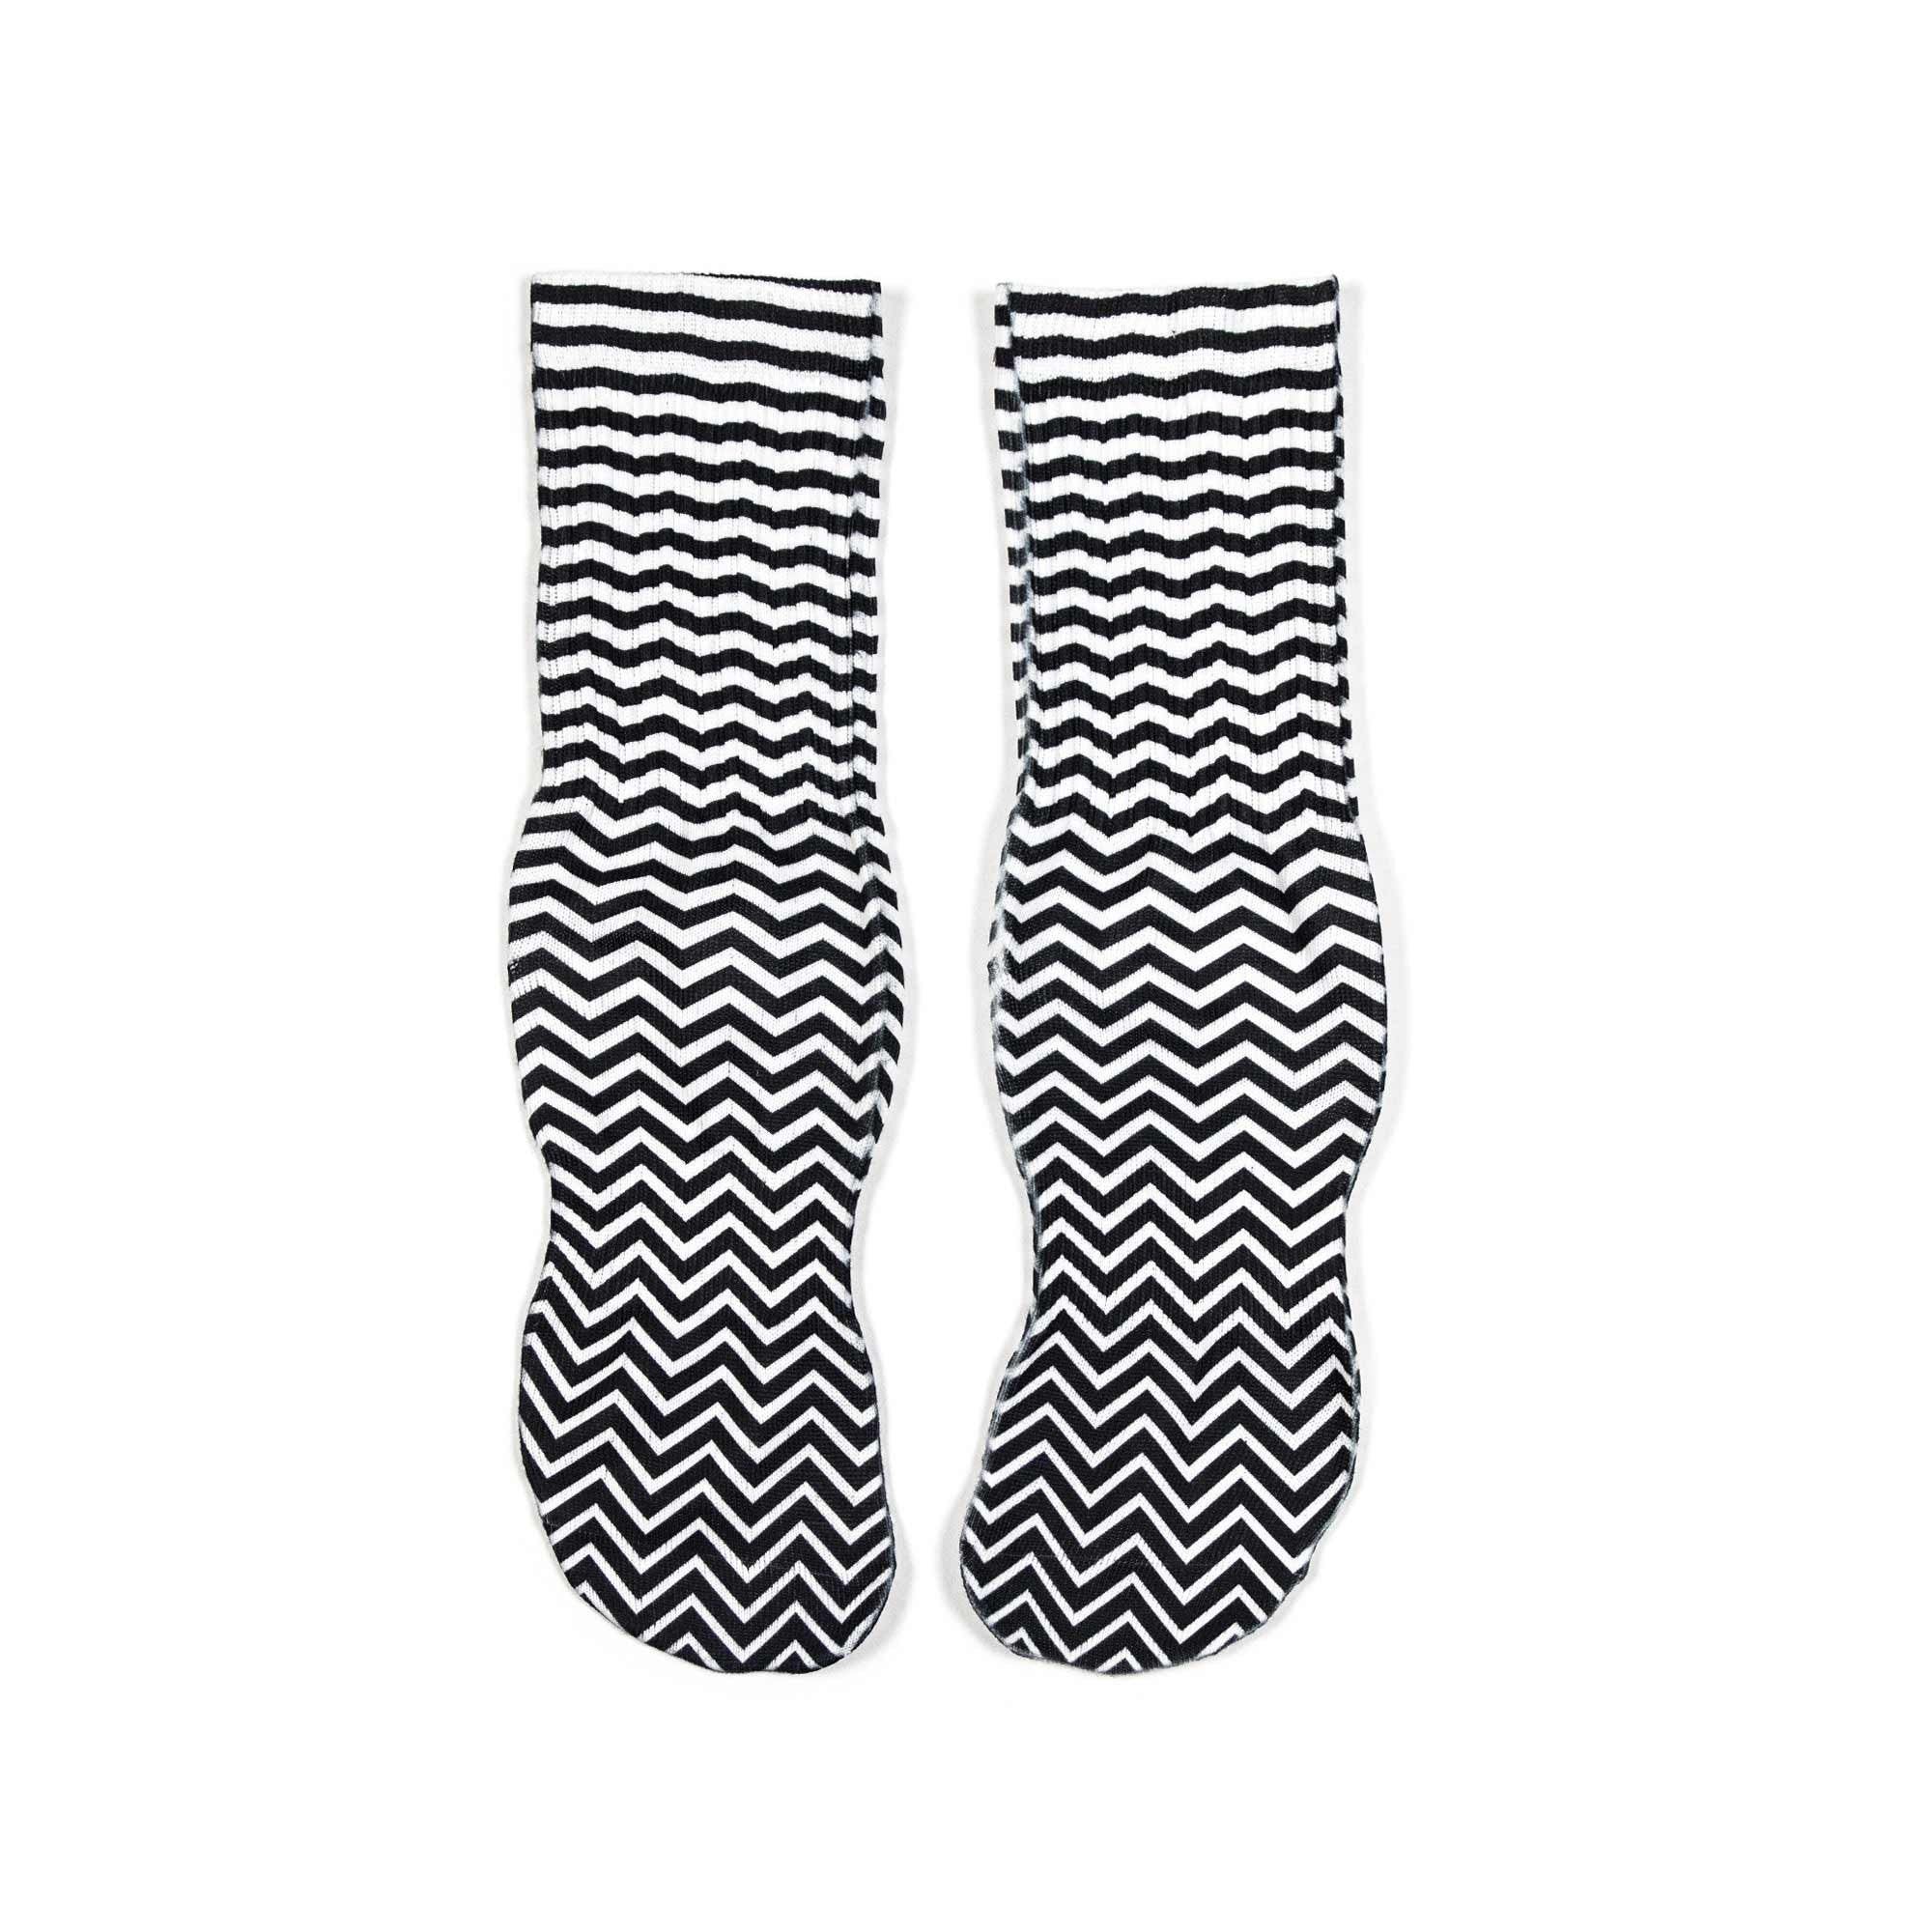 Chevron High Comfort Crew Socks